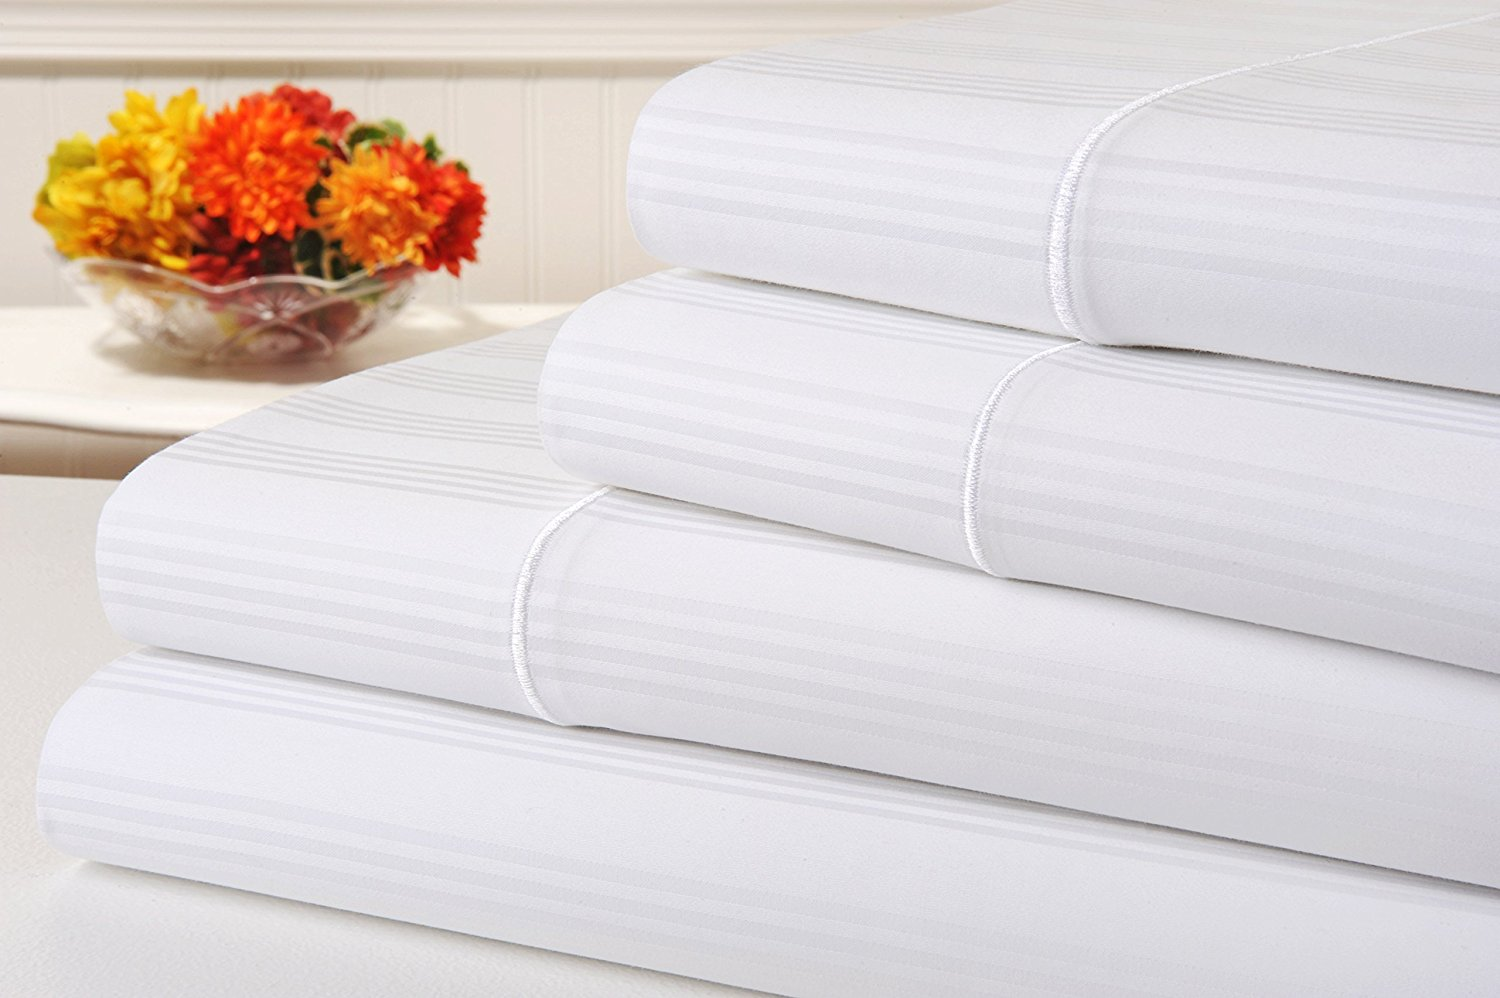 kathy ireland 400 Thread Count 100% Cotton Stripe Bed Sheet Set, Queen Size Bed Sheets 4 Piece Set, Long-staple Combed Pure Cotton Bedsheets, Soft & Silky Sateen Weave by Home (Queen, White)